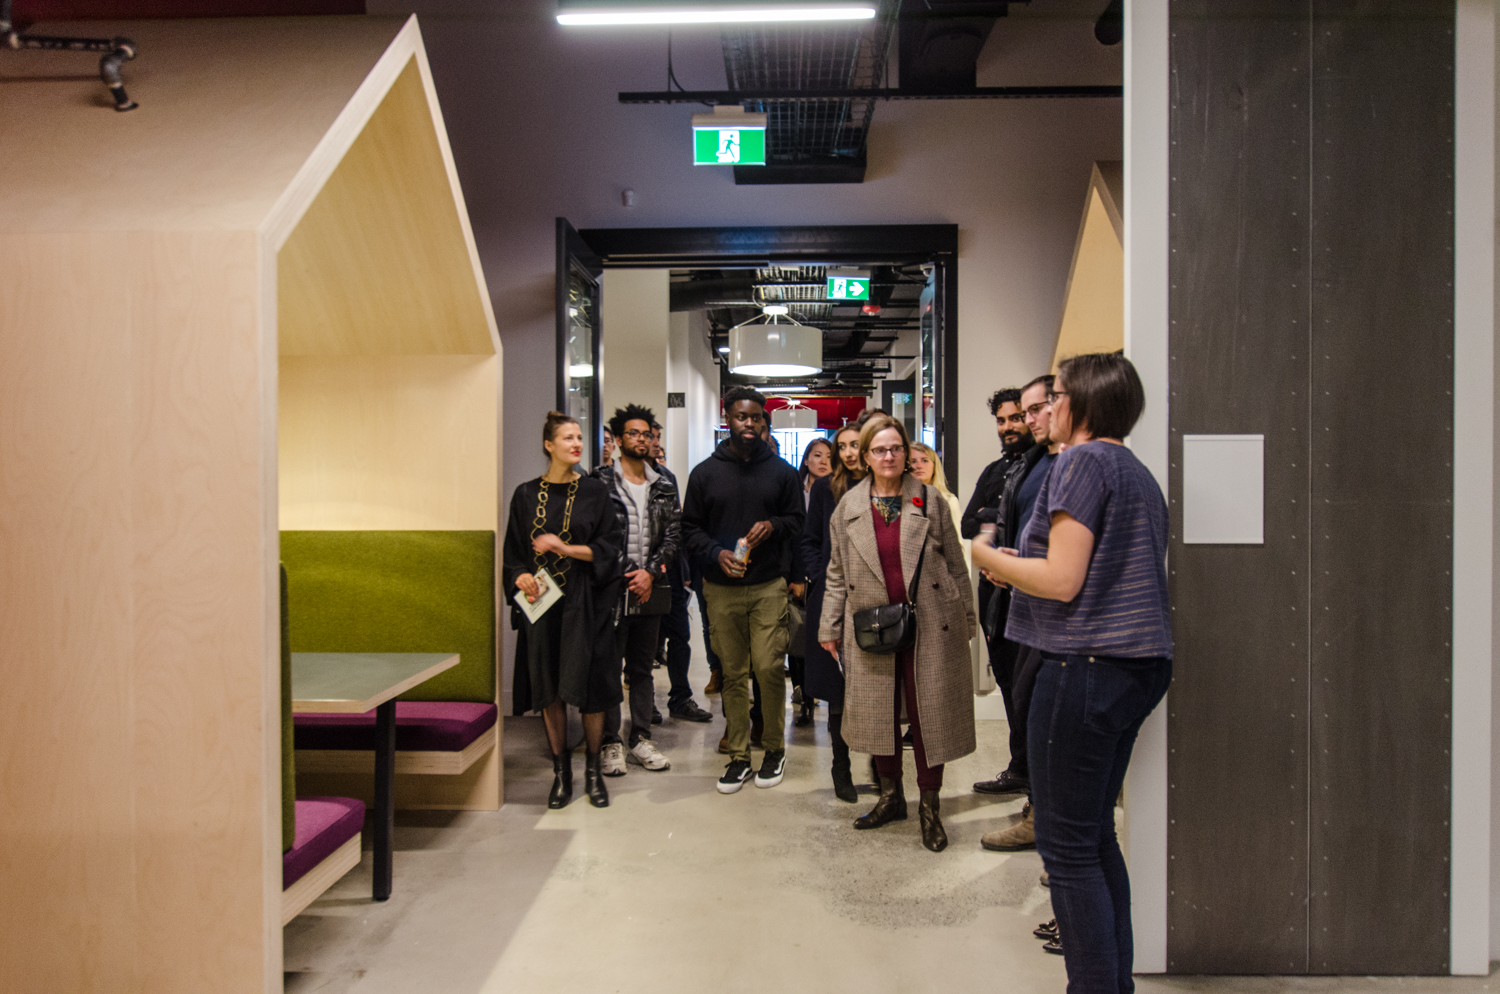 Tor McGlade leading an interior design tour at Artscape Daniels Launchpad, showing the group a covered wooden seating nook with olive and plum cushions